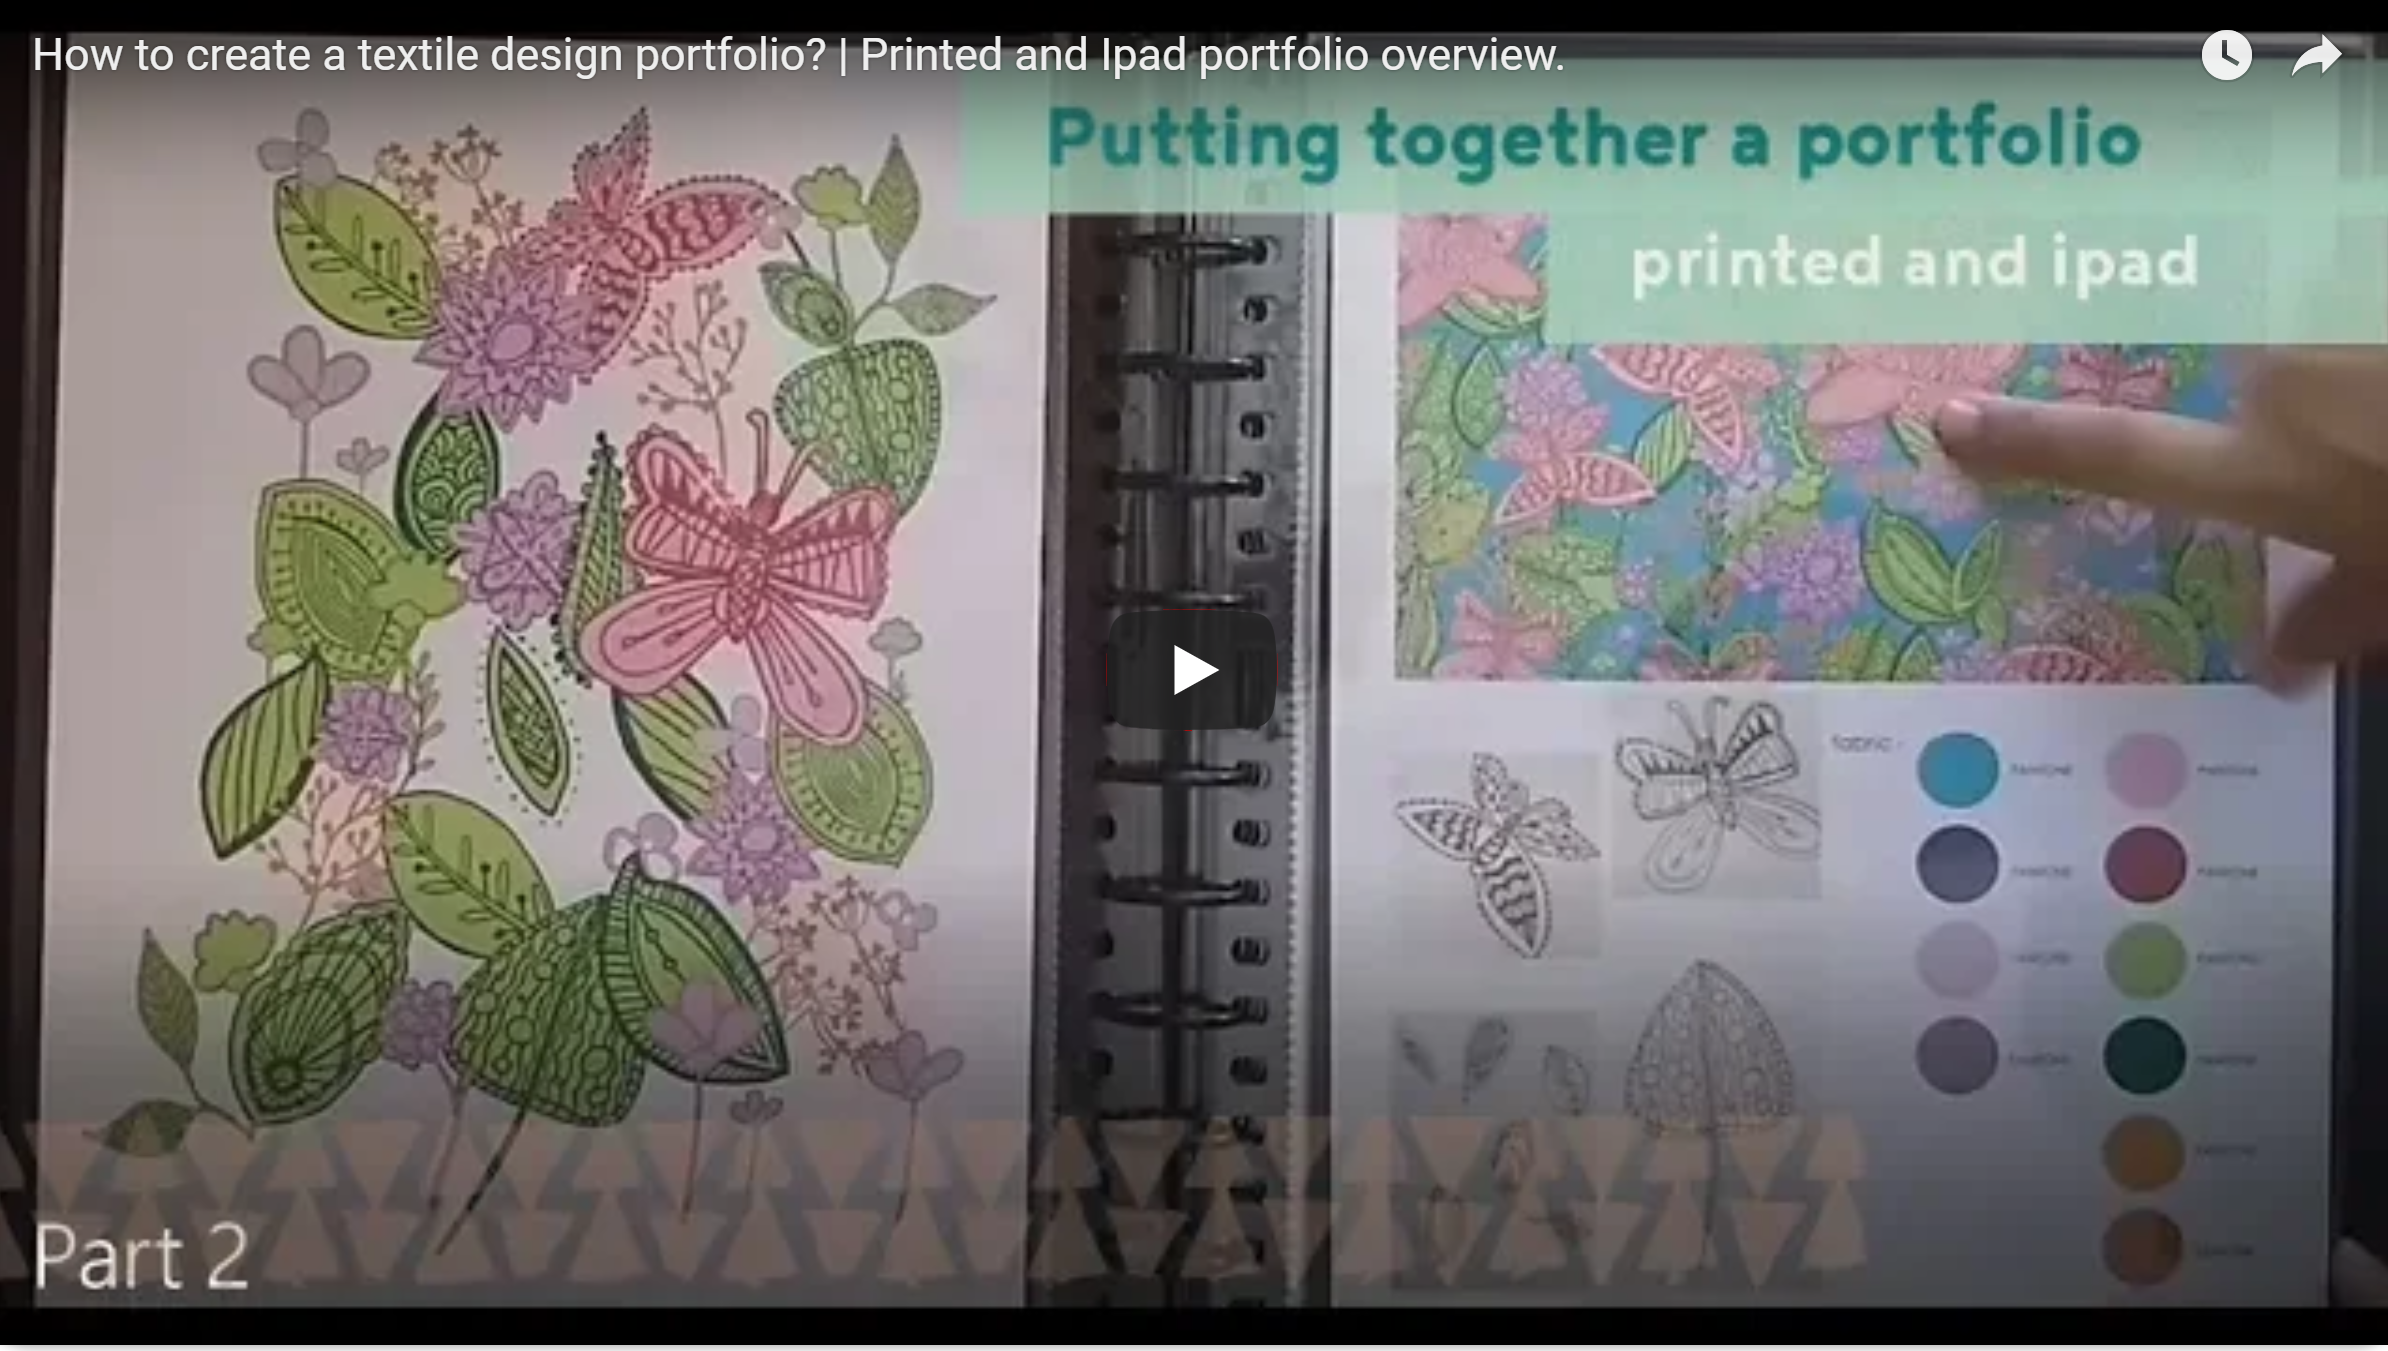 how to create a textile design portfolio printed and ipad version